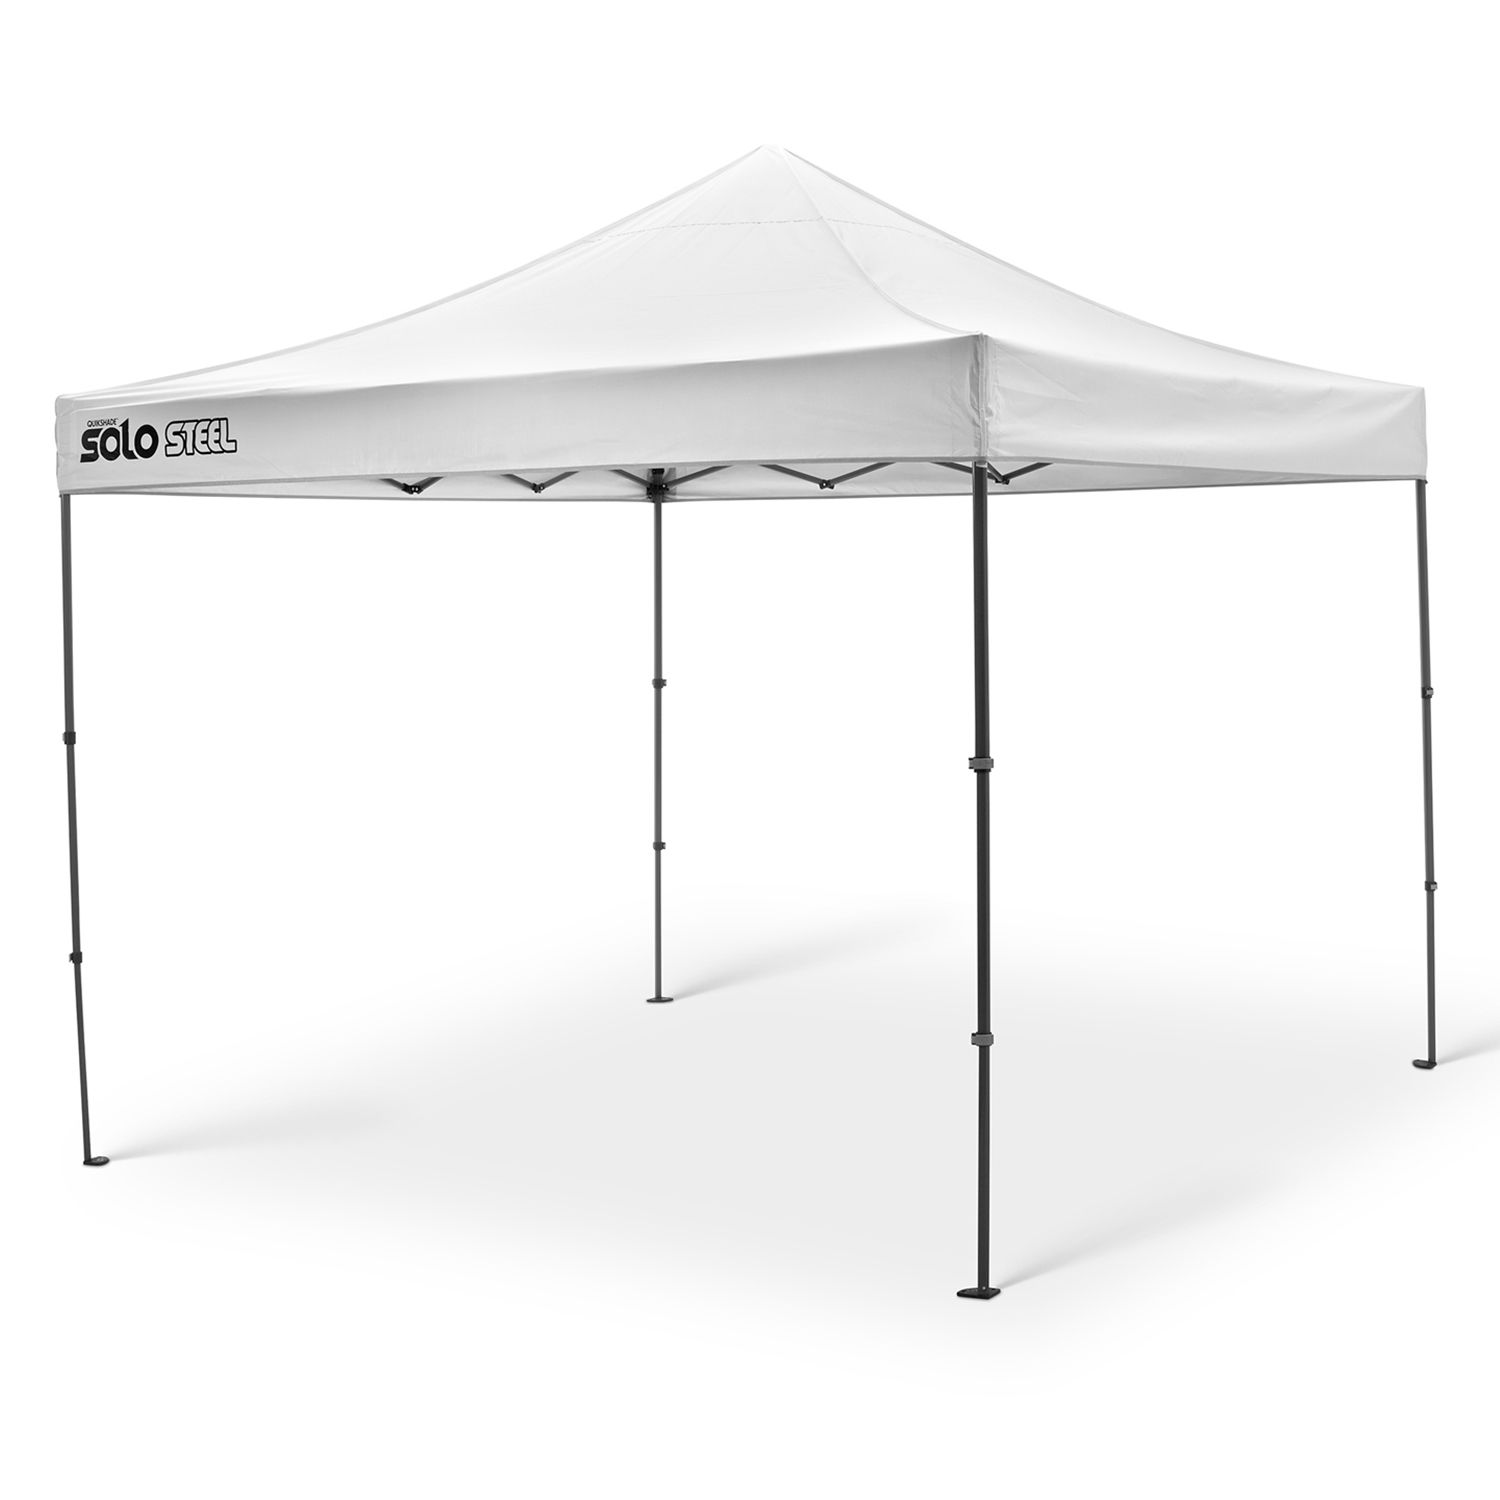 quik shade solo steel 100 10u0027 x 10u0027 instant canopy - Instant Canopy